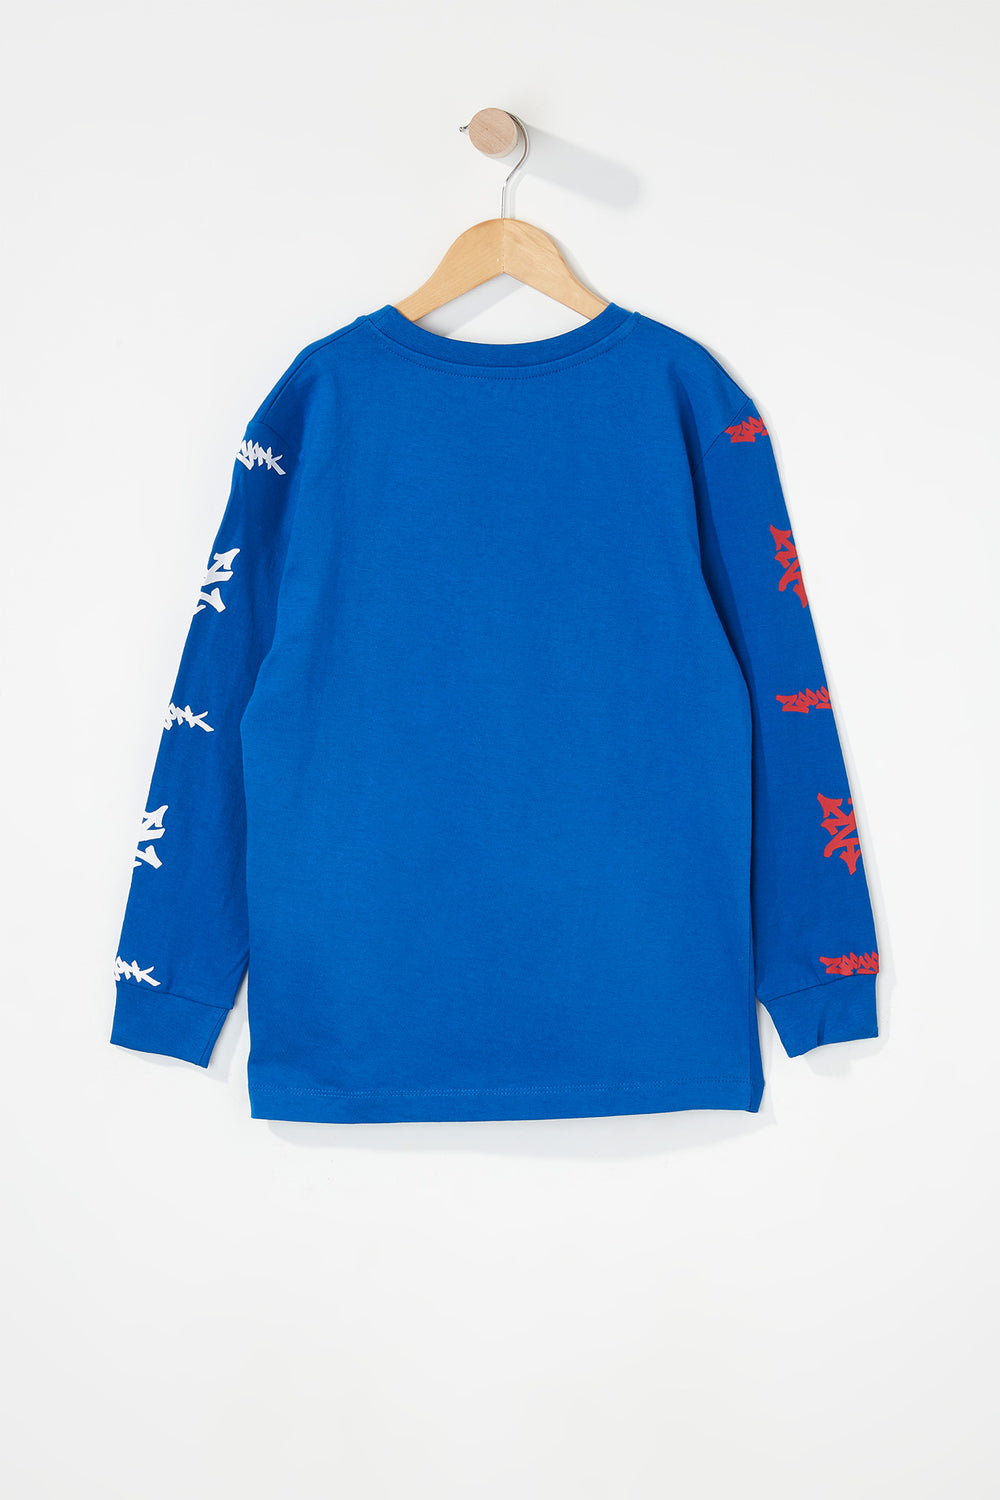 Zoo York Boys Practice Truth Long Sleeve Shirt Blue